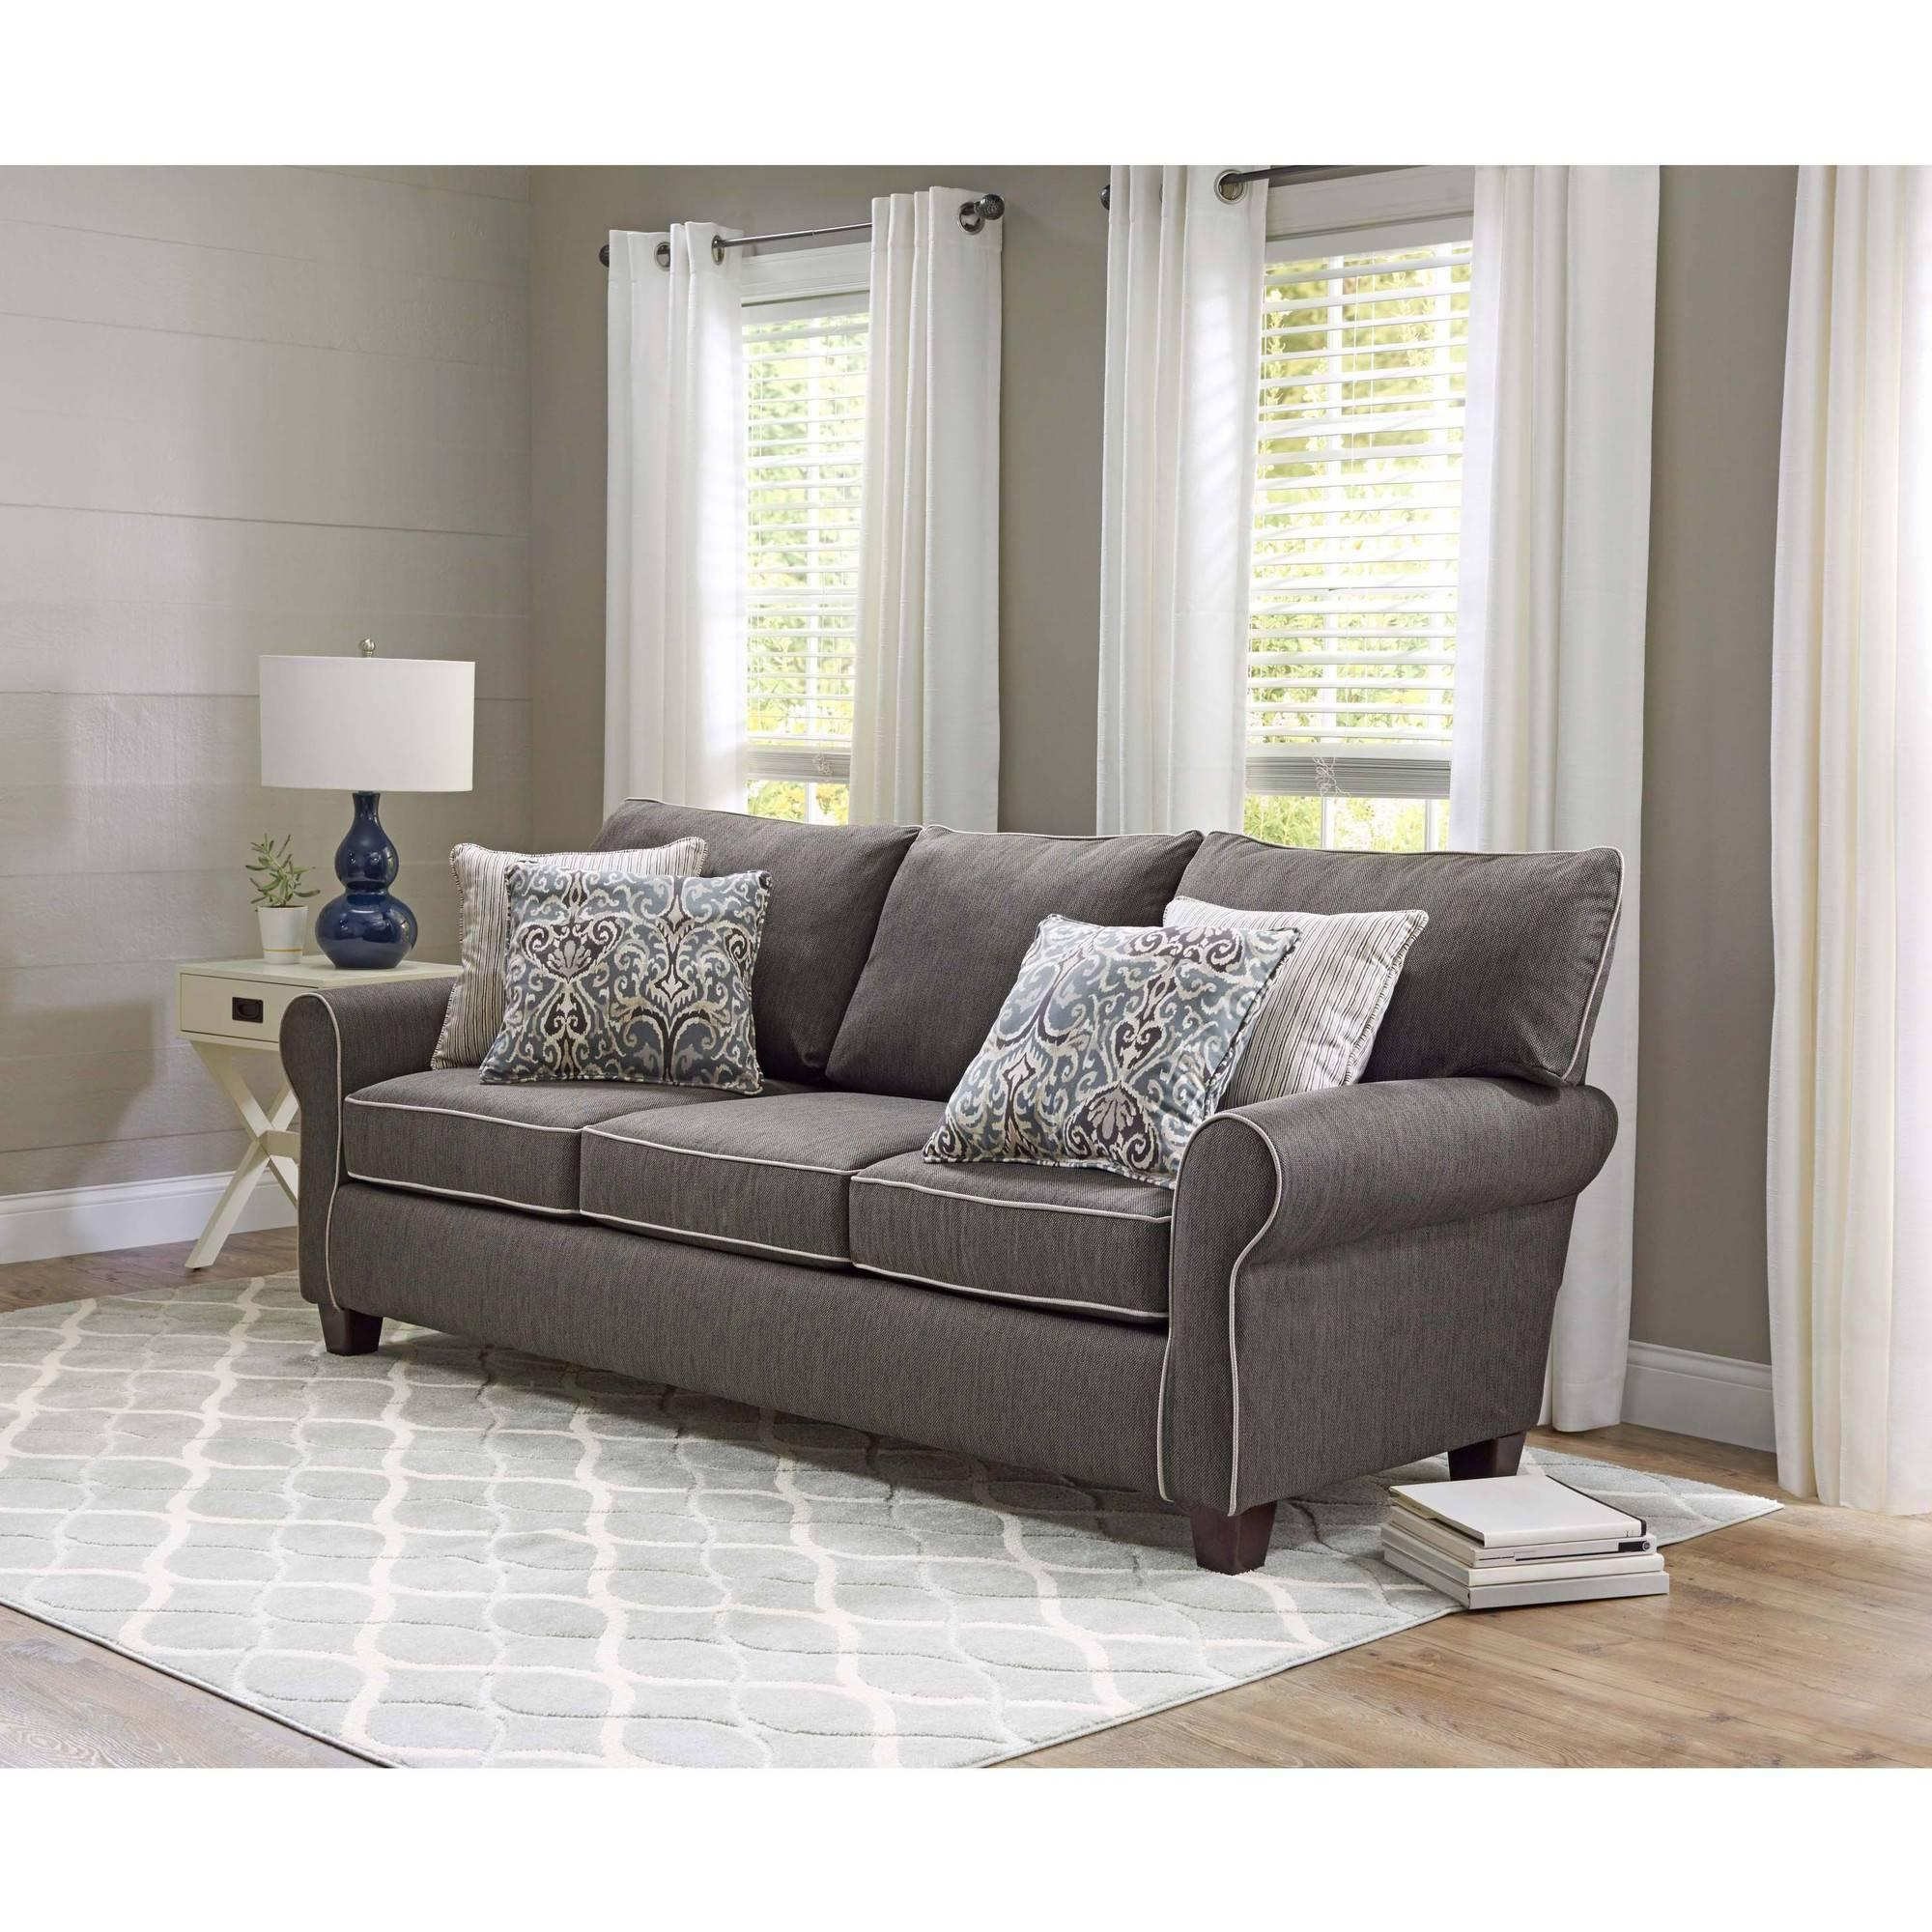 Furniture: Wonderful Walmart Couch Covers Design For Alluring Within 3 Piece Sectional Sofa Slipcovers (View 12 of 20)